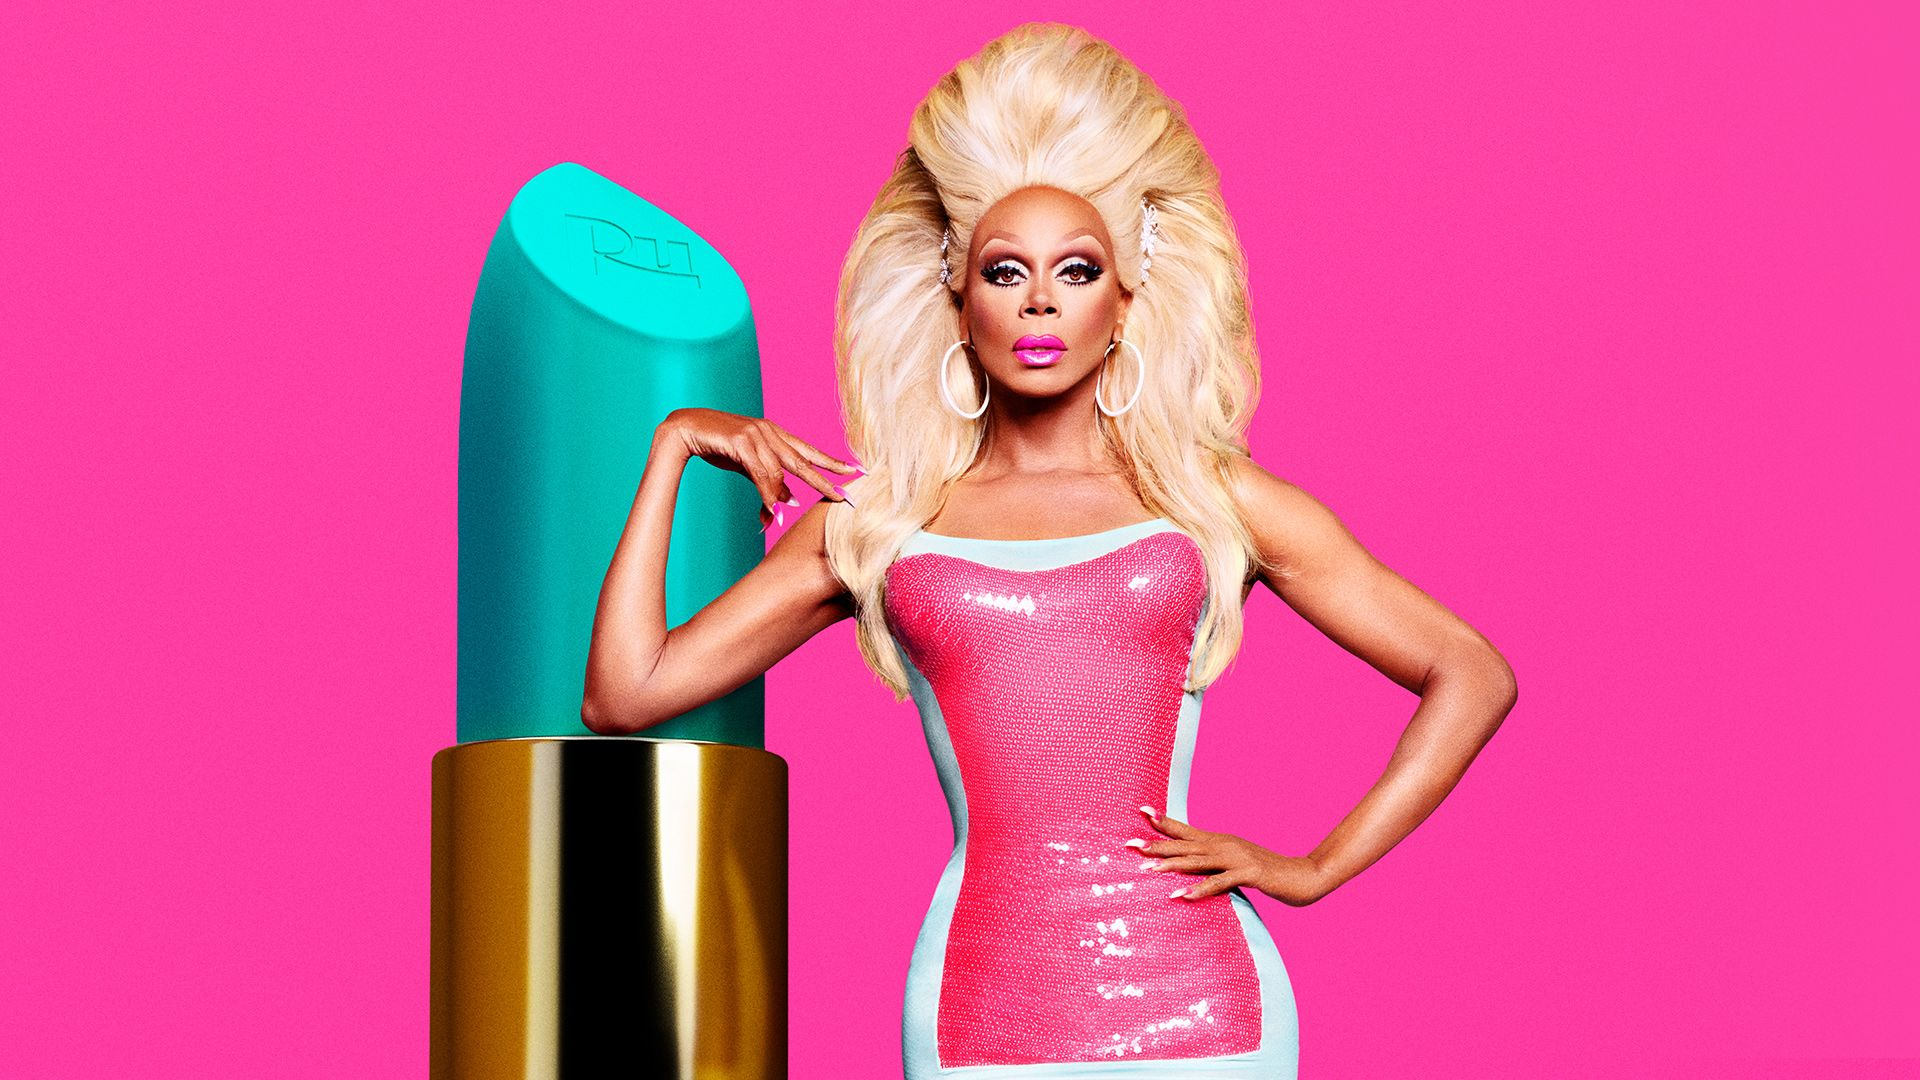 RuPaul's Drag Race | 9: Rupaul's Drag Race Episodes (TV Series